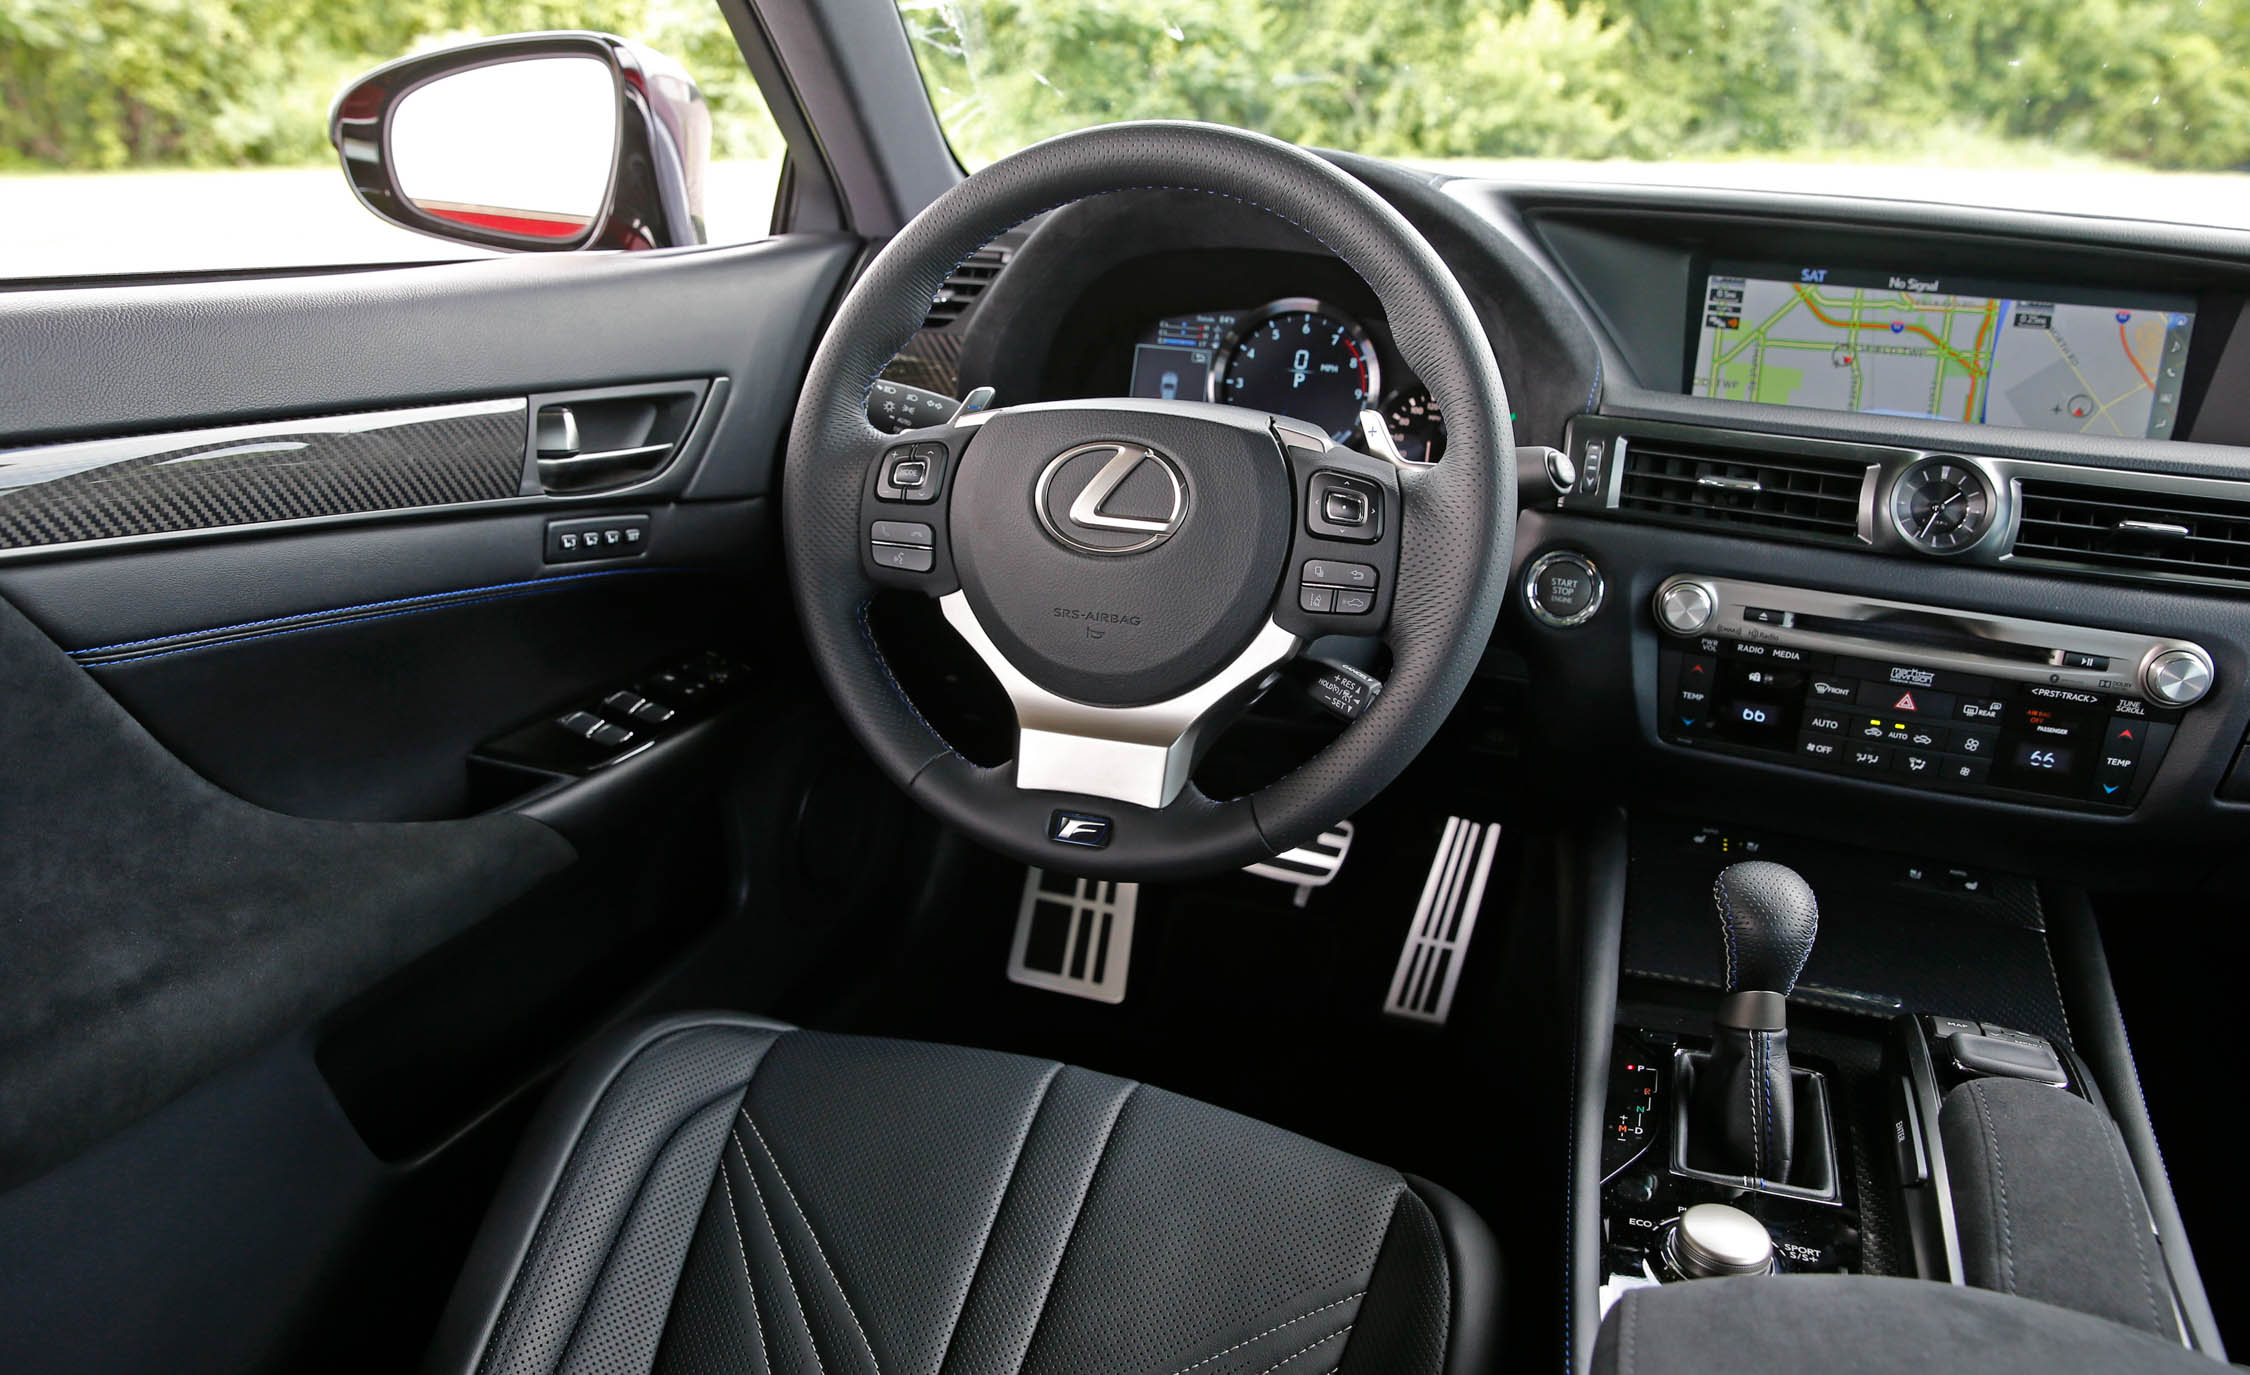 2016 Lexus Gs F Interior Cockpit (Photo 8 of 20)